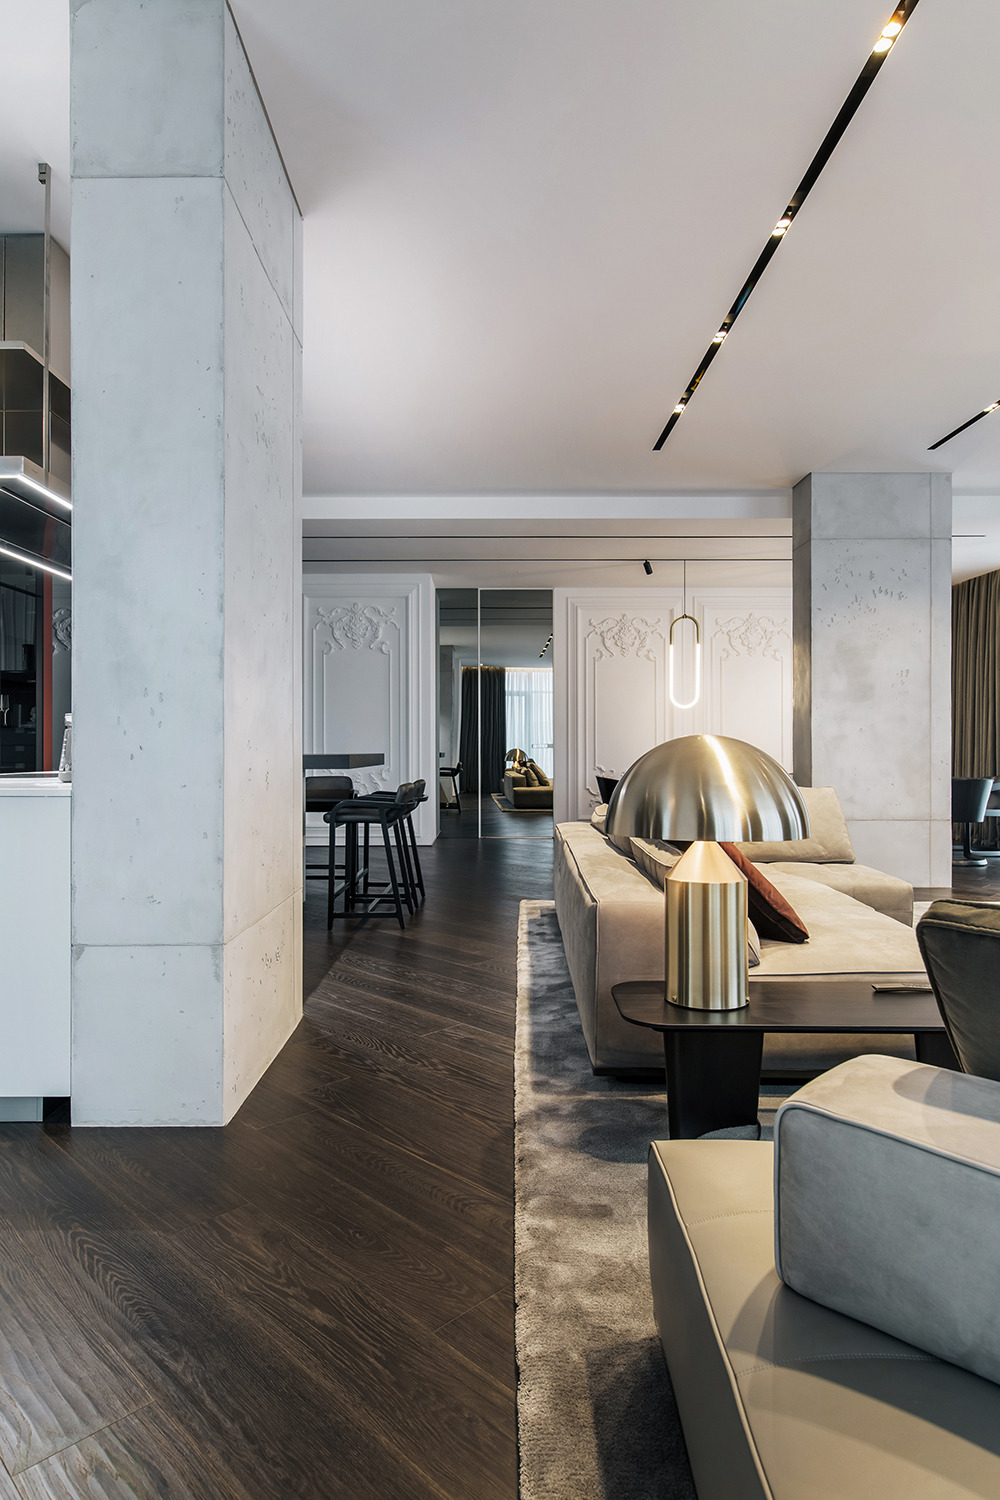 Luxury Apartment Design Interiors Best Of Luxury Apartment with A sophisticated and Dramatic Interior